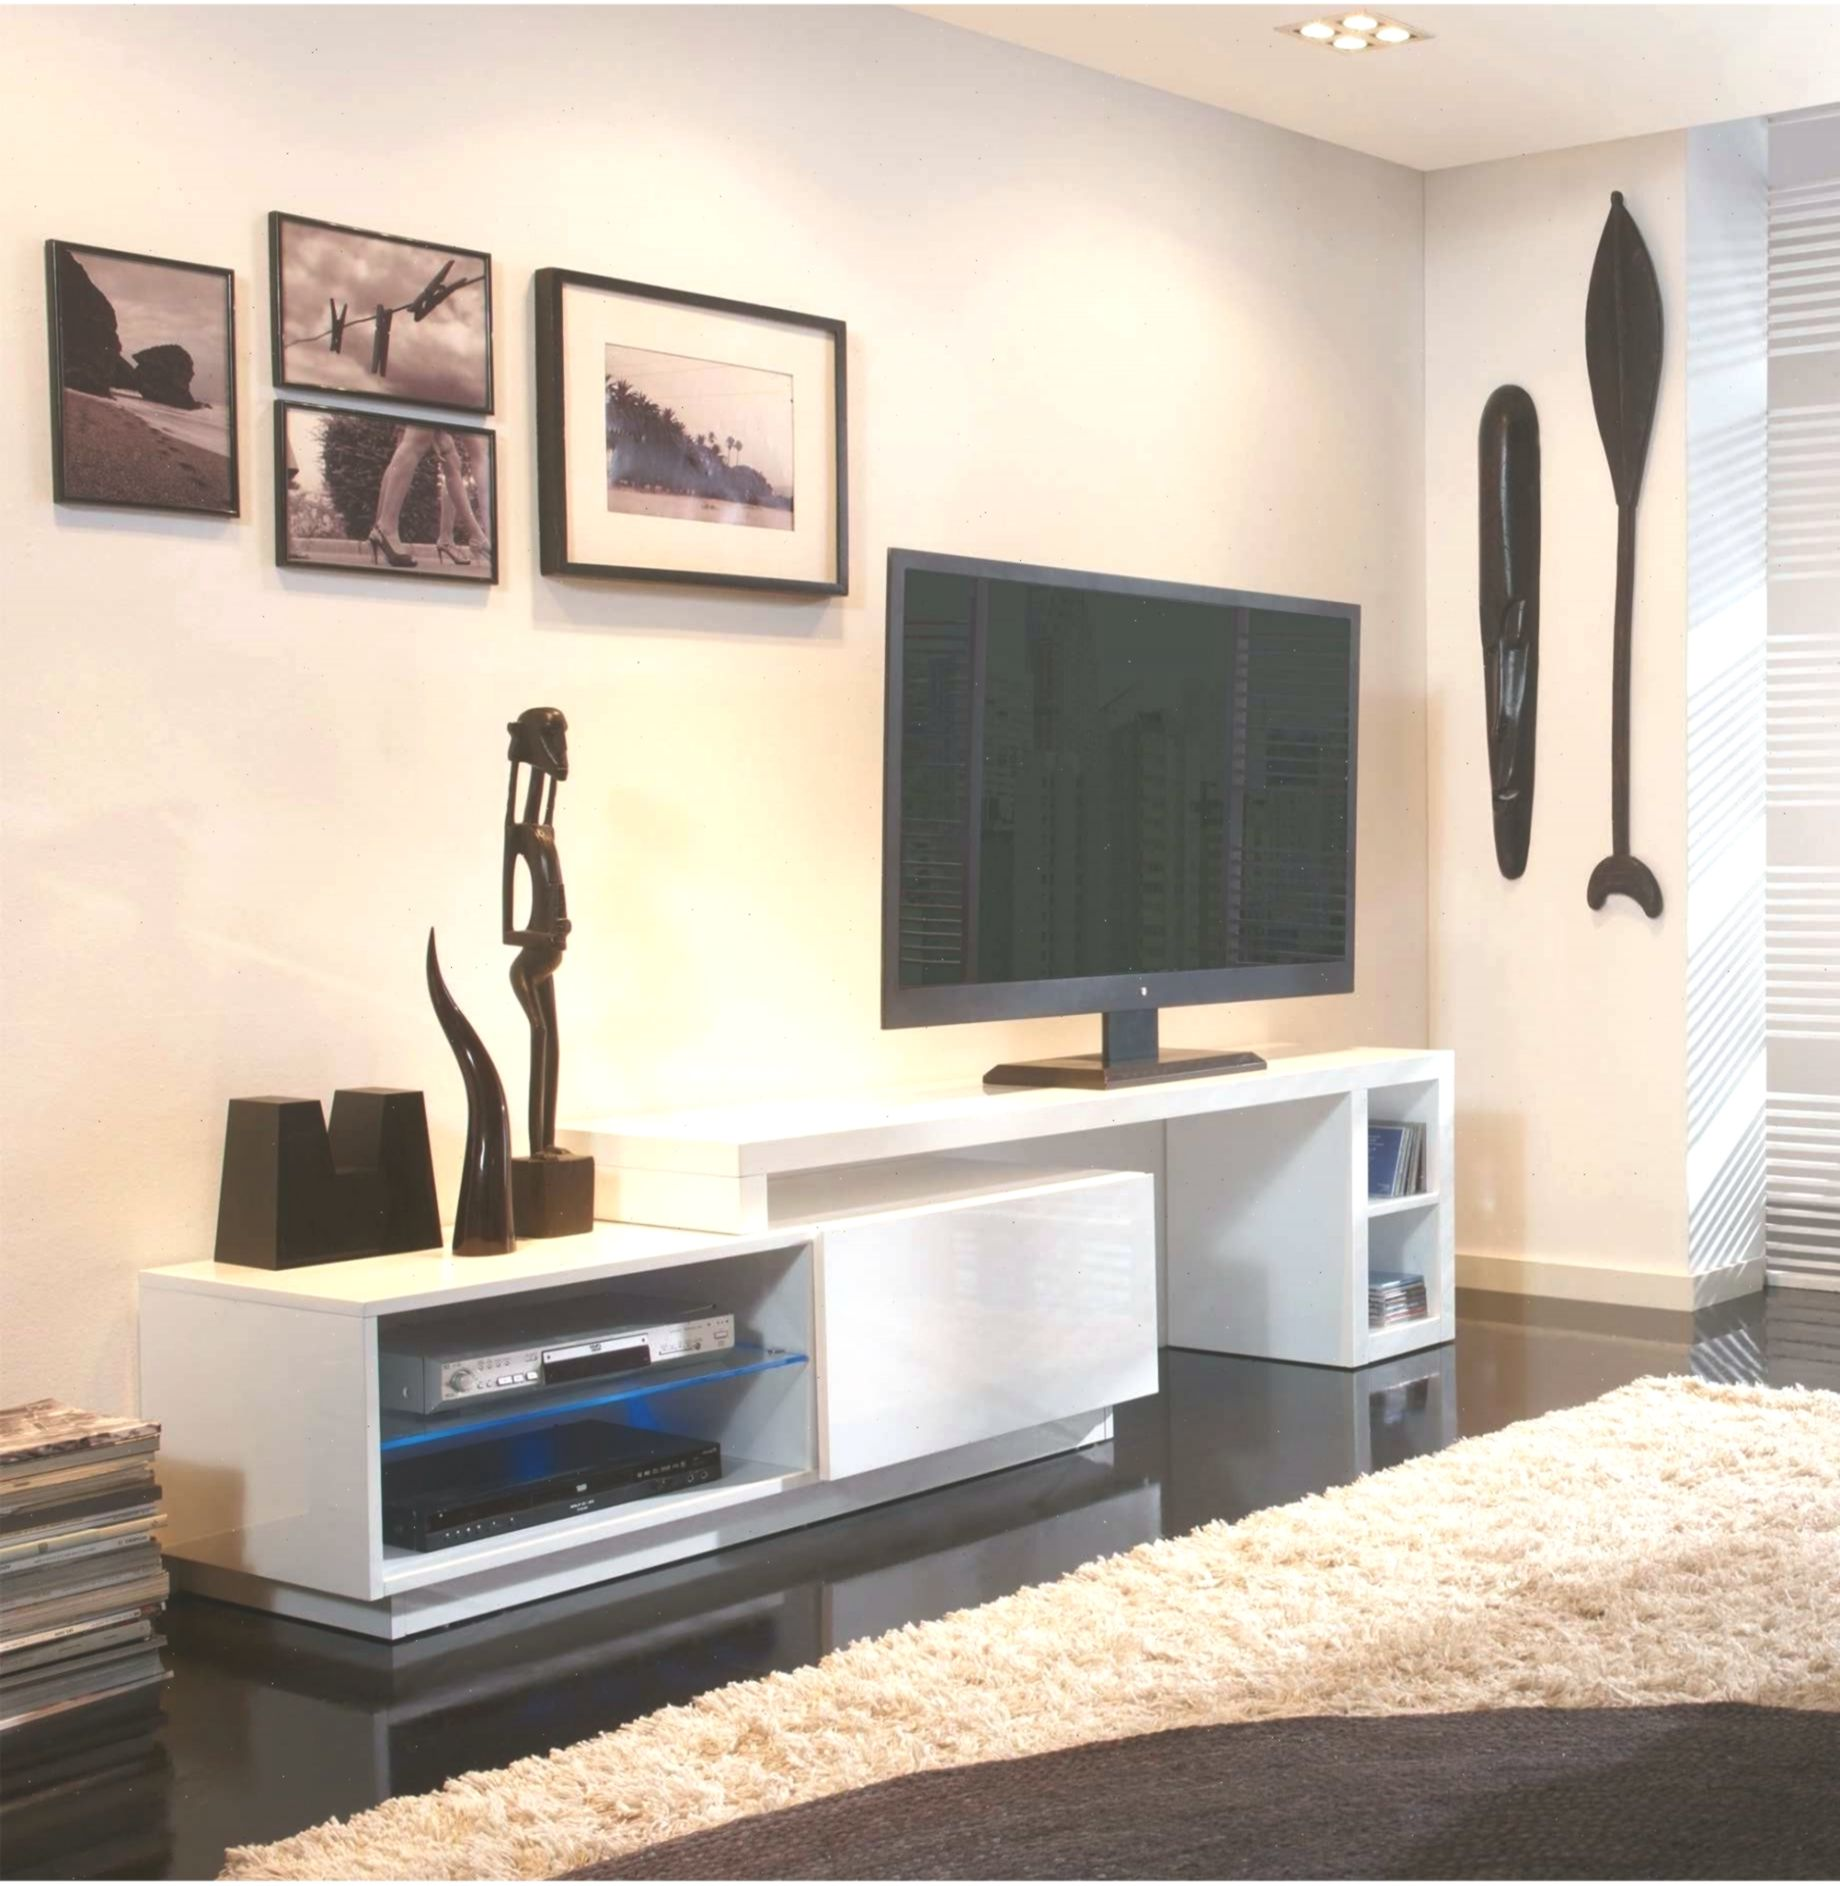 30 Inspirant Boulanger Meuble Tv Recommandations Boulanger Meuble A Chaussure Contemporaryt In 2020 Contemporary Tv Units Fresh Living Room White Dining Room Sets